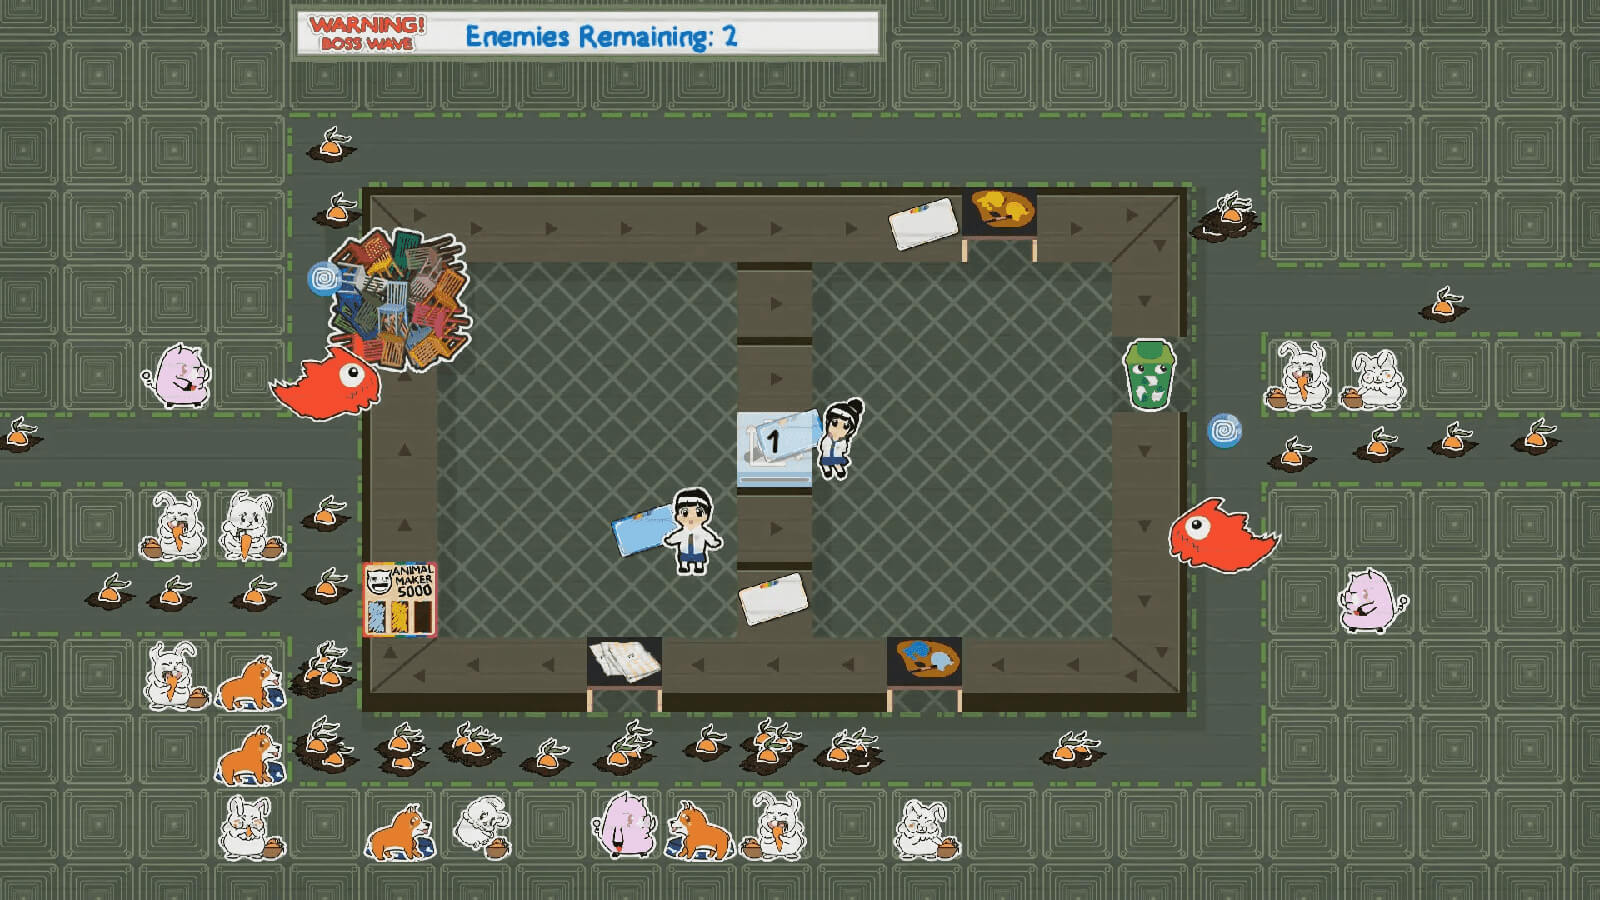 In a top-down view, a boy and girl are creating stickers surrounded by animal stickers and oncoming enemies.